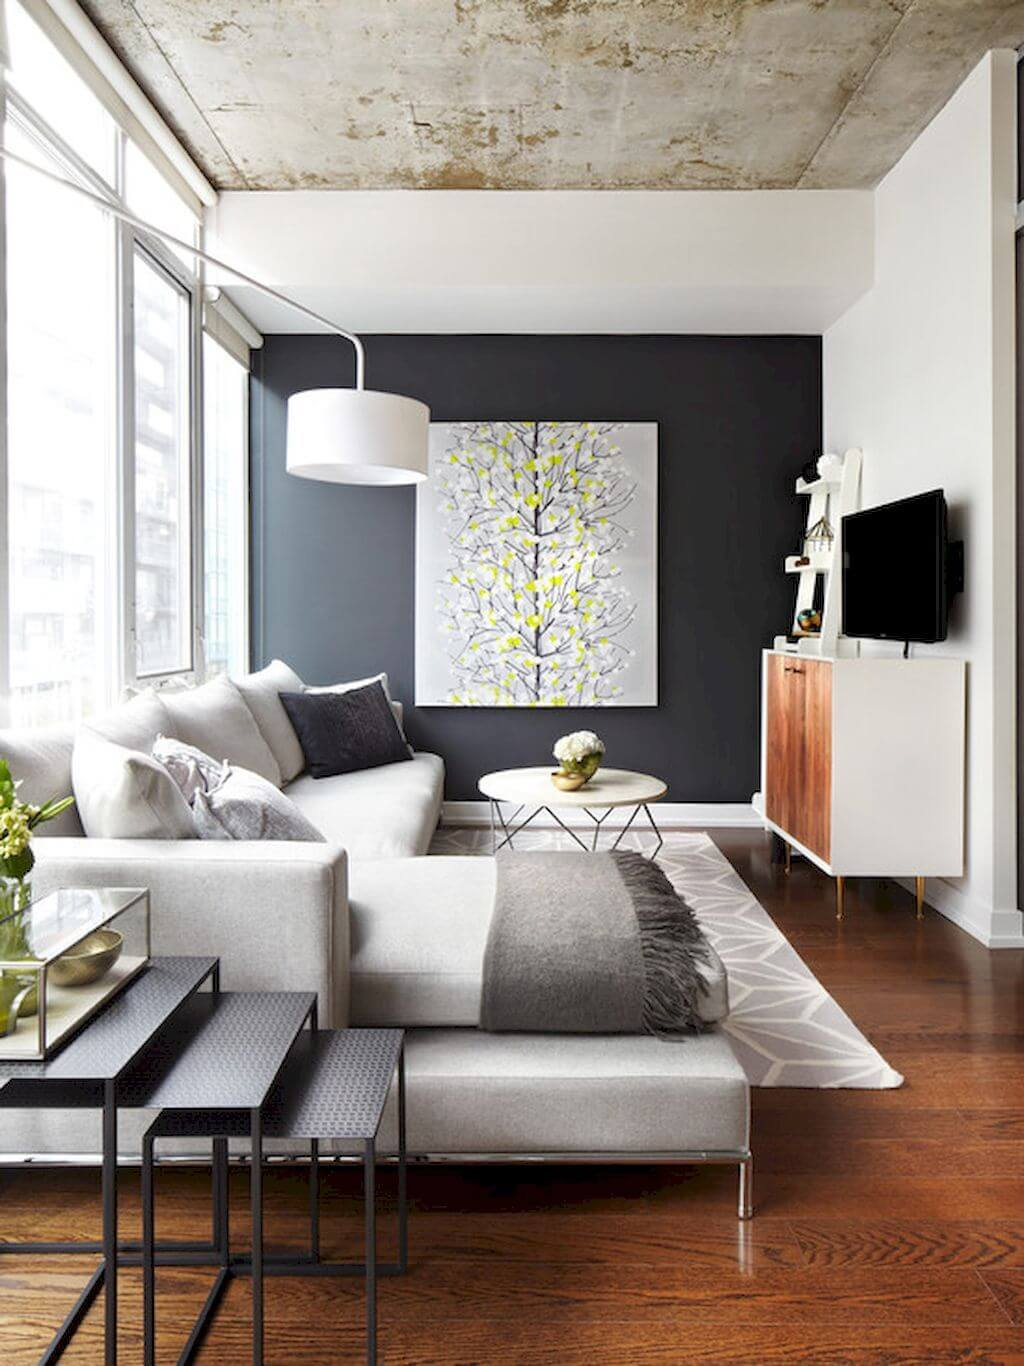 Contemporary Room with Wall Art